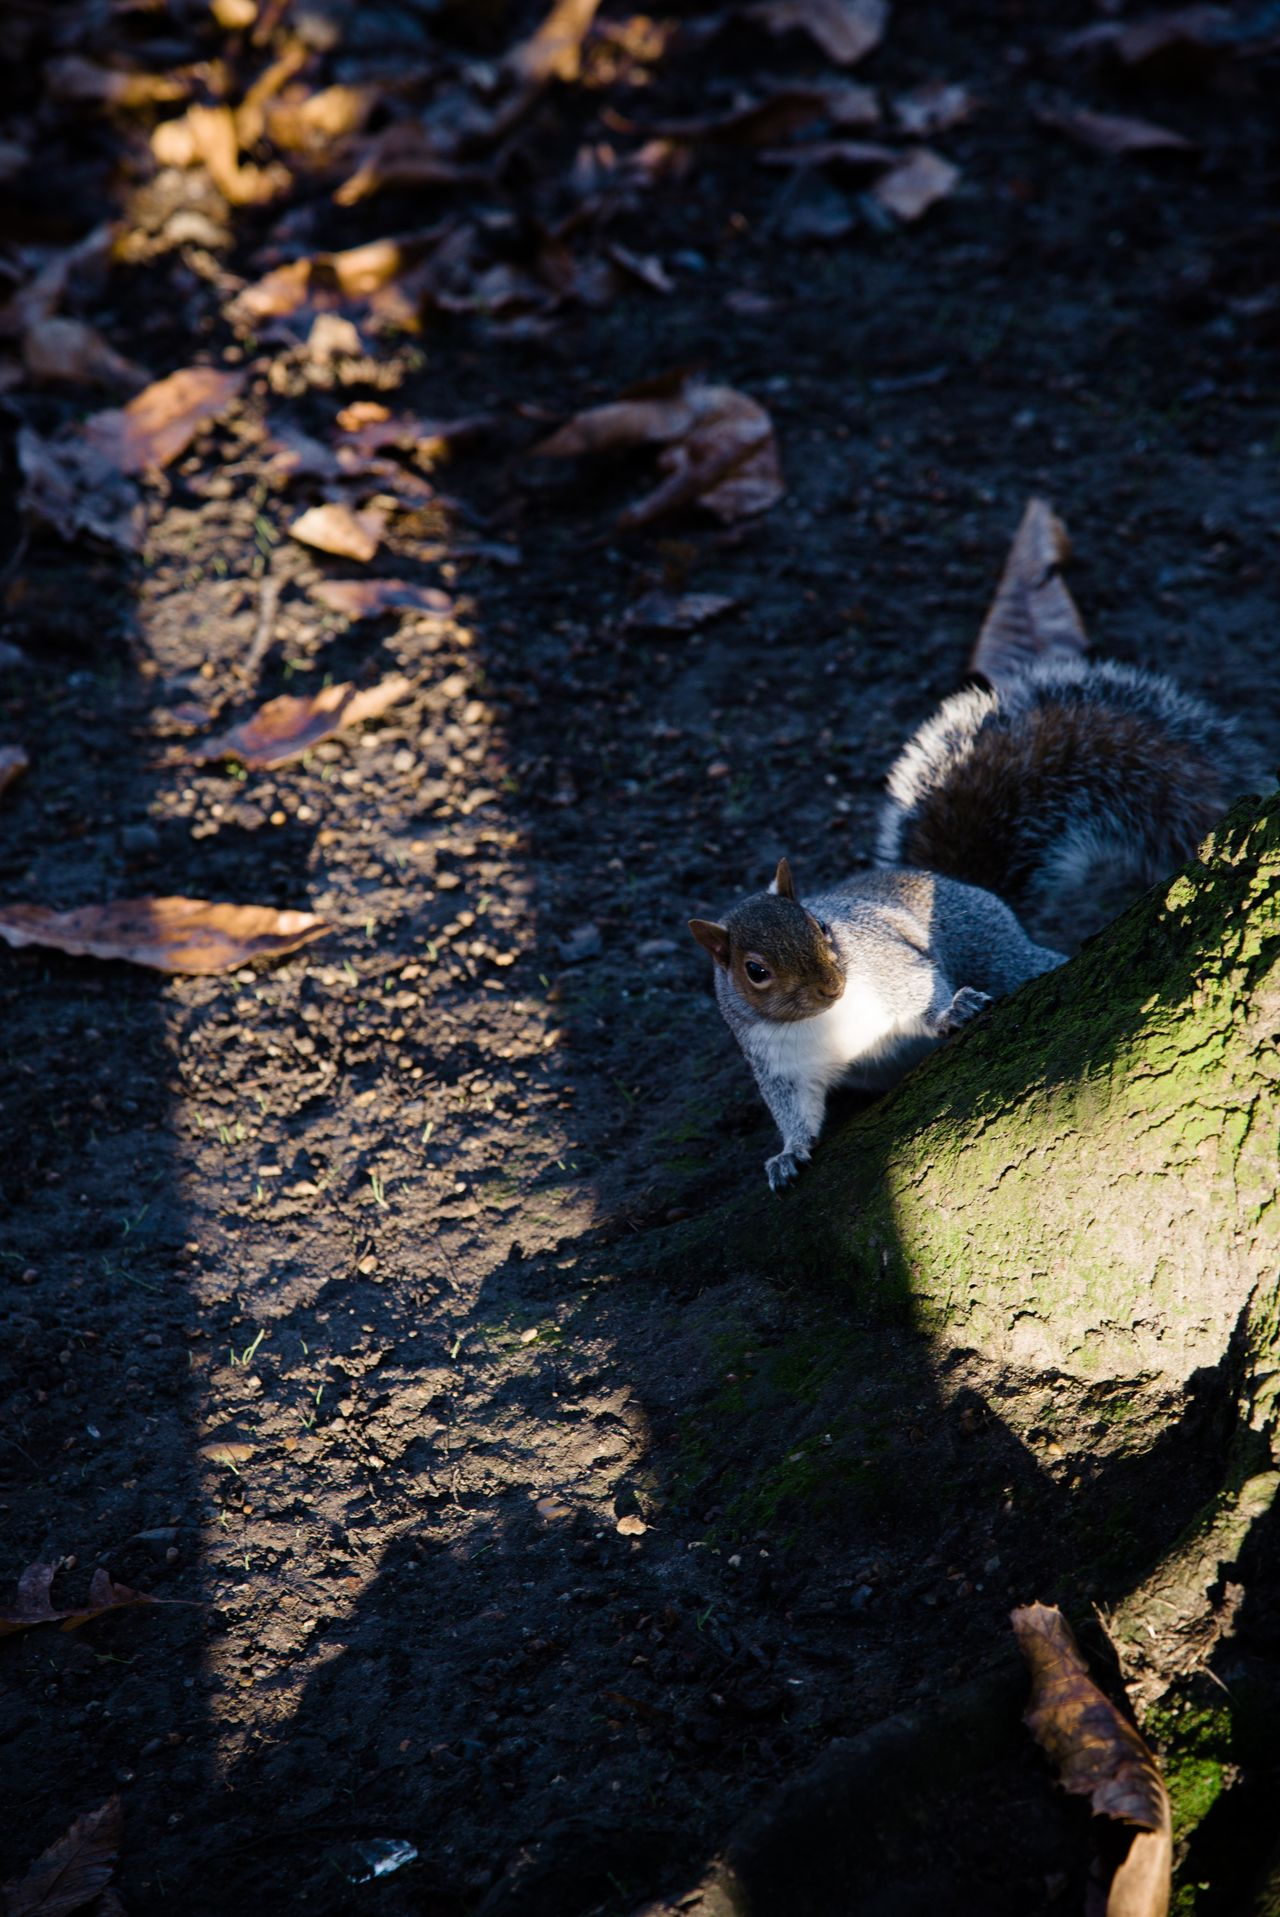 Greenwich Park Animal Themes Animal Wildlife Animals In The Wild Bird Day Greenwich Park High Angle View London Parks Mammal Nature No People One Animal Outdoors Park Shadow Squirrel Sunlight